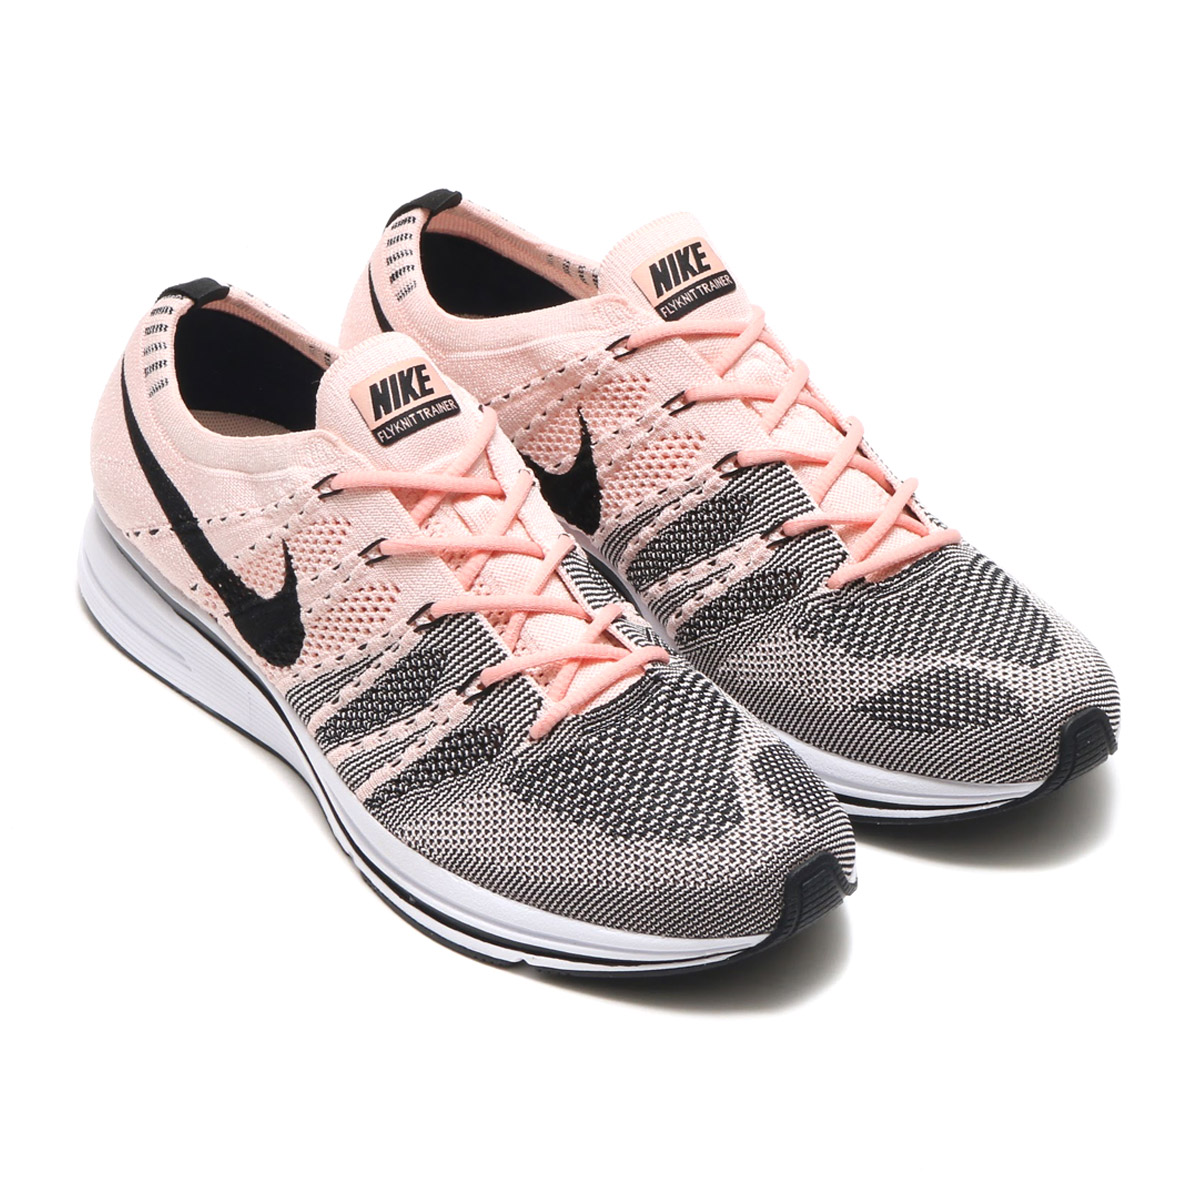 4ac5d1ee6cbe atmos pink  NIKE FLYKNIT TRAINER (Nike fried food knit trainer ...